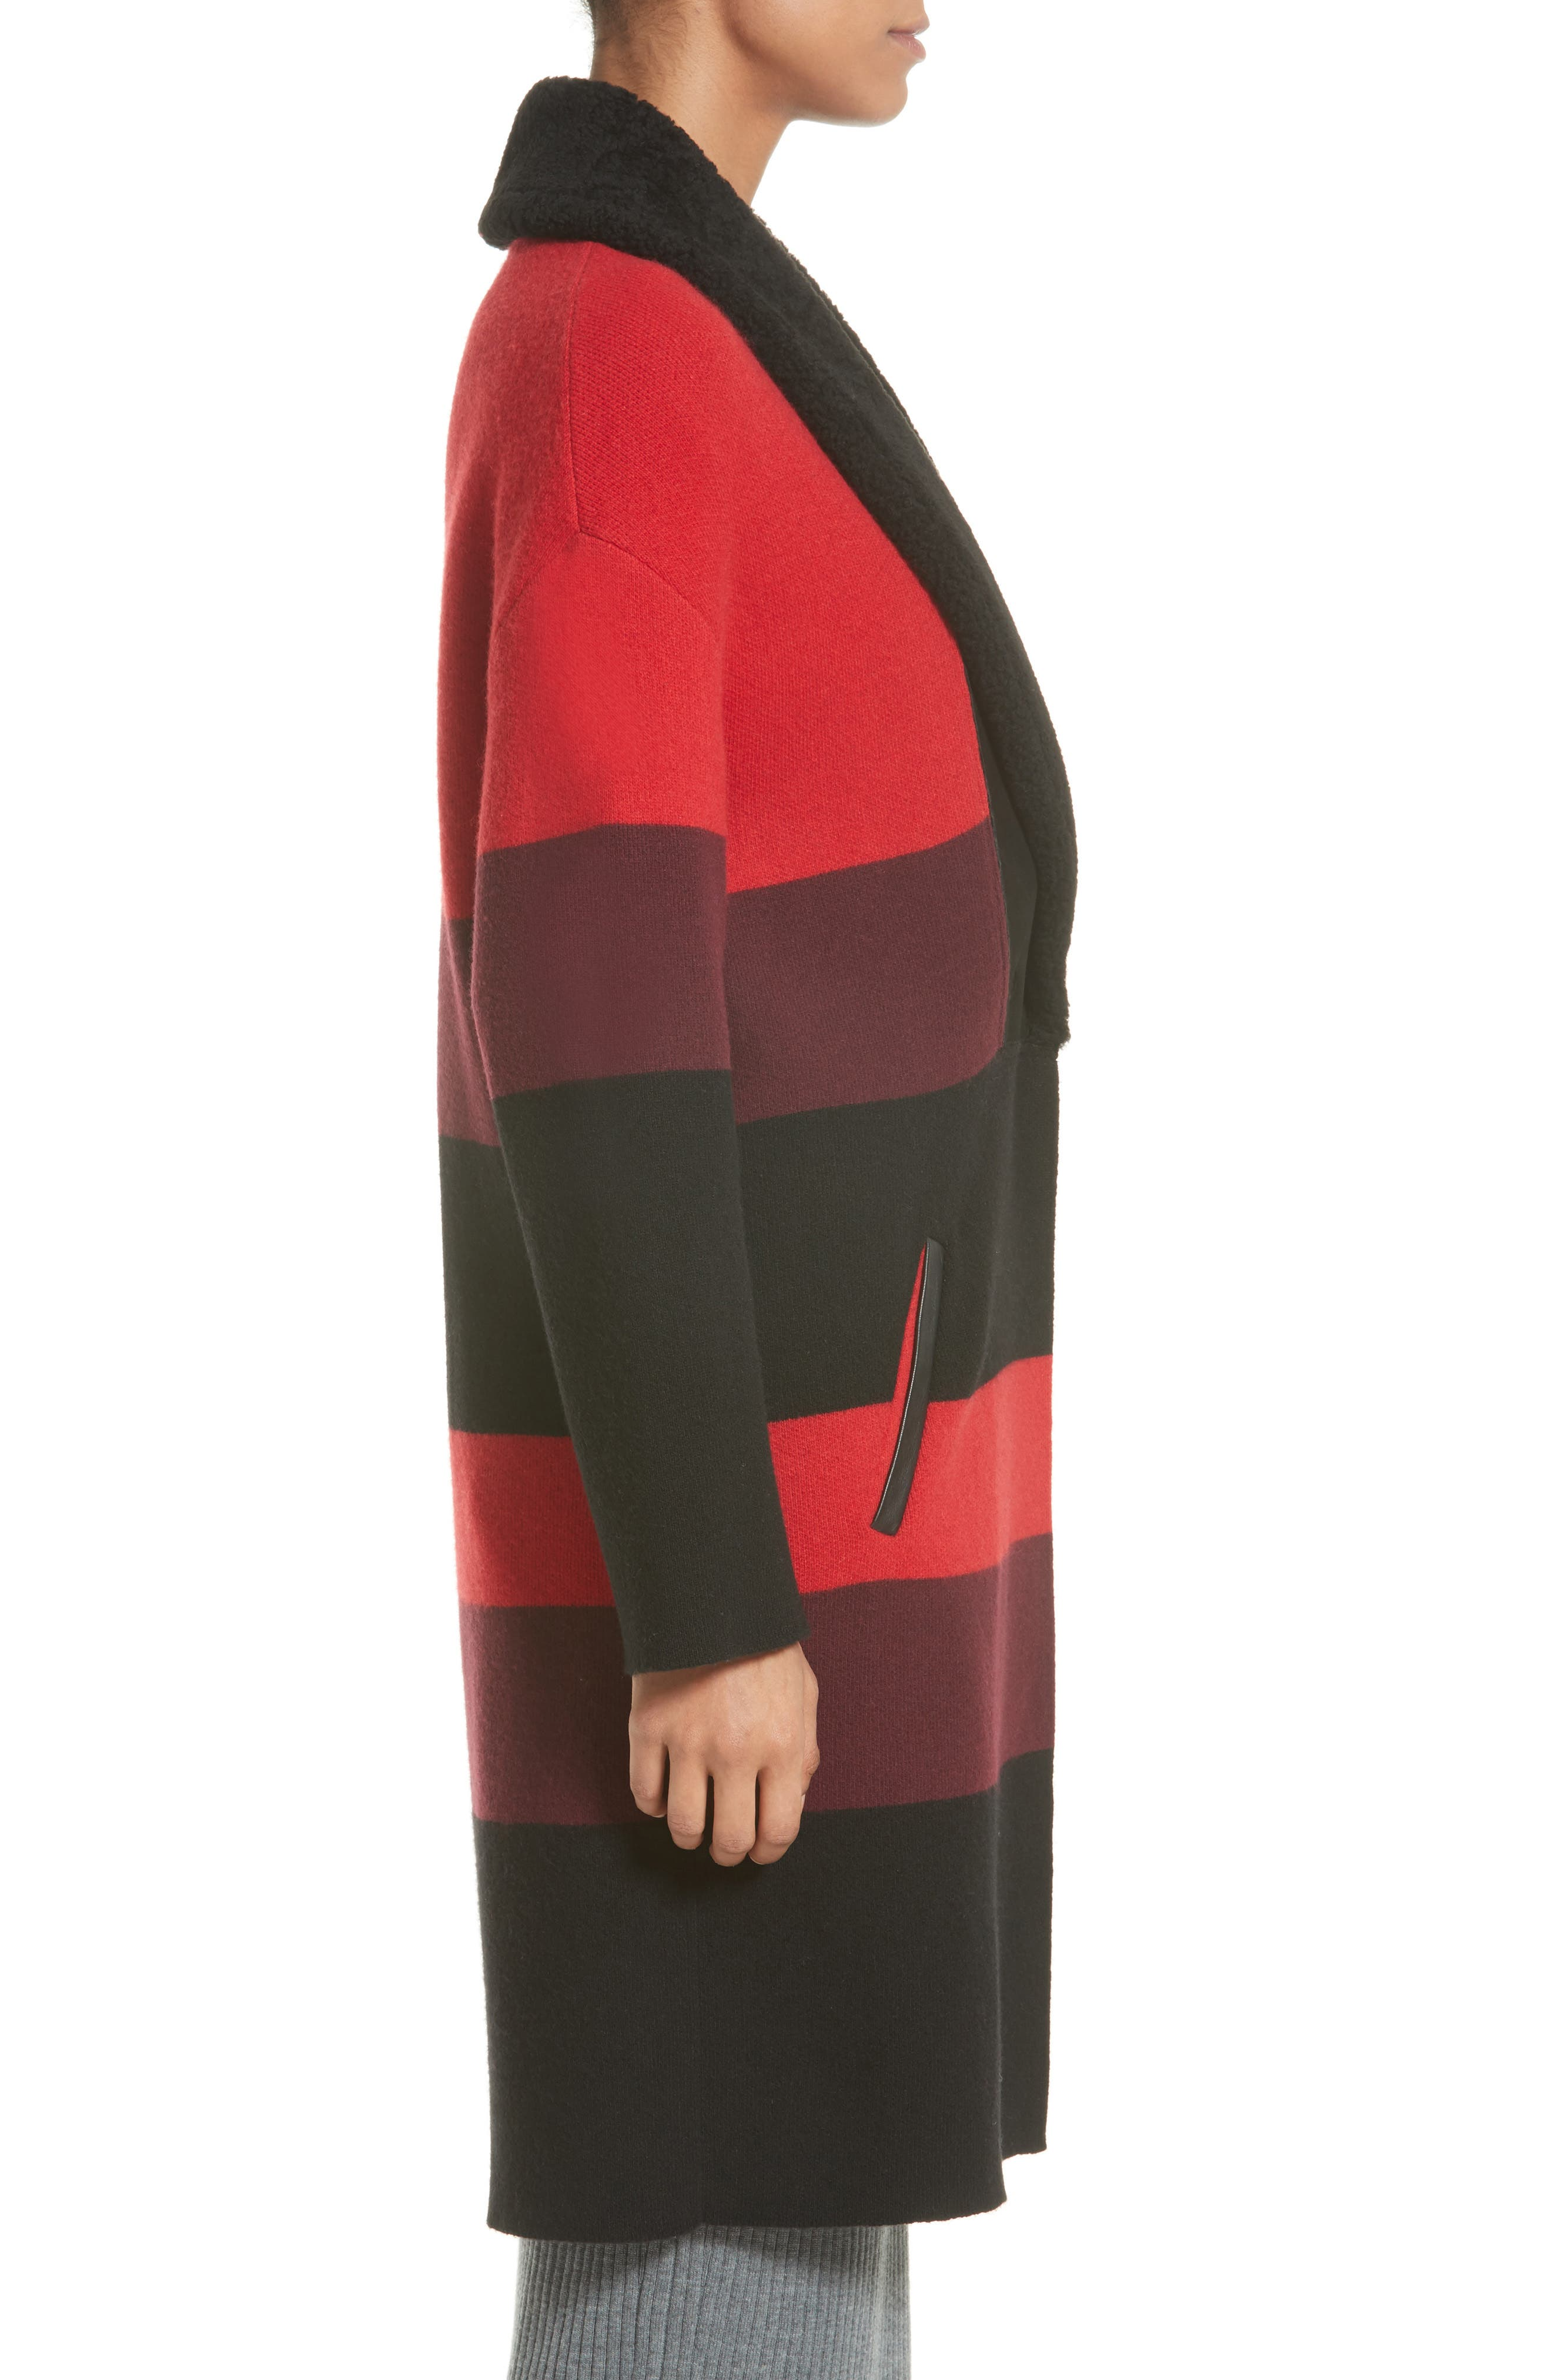 Double Knit Felted Wool Blend Coat with Genuine Shearling Collar,                             Alternate thumbnail 3, color,                             Caviar/ Sari Multi